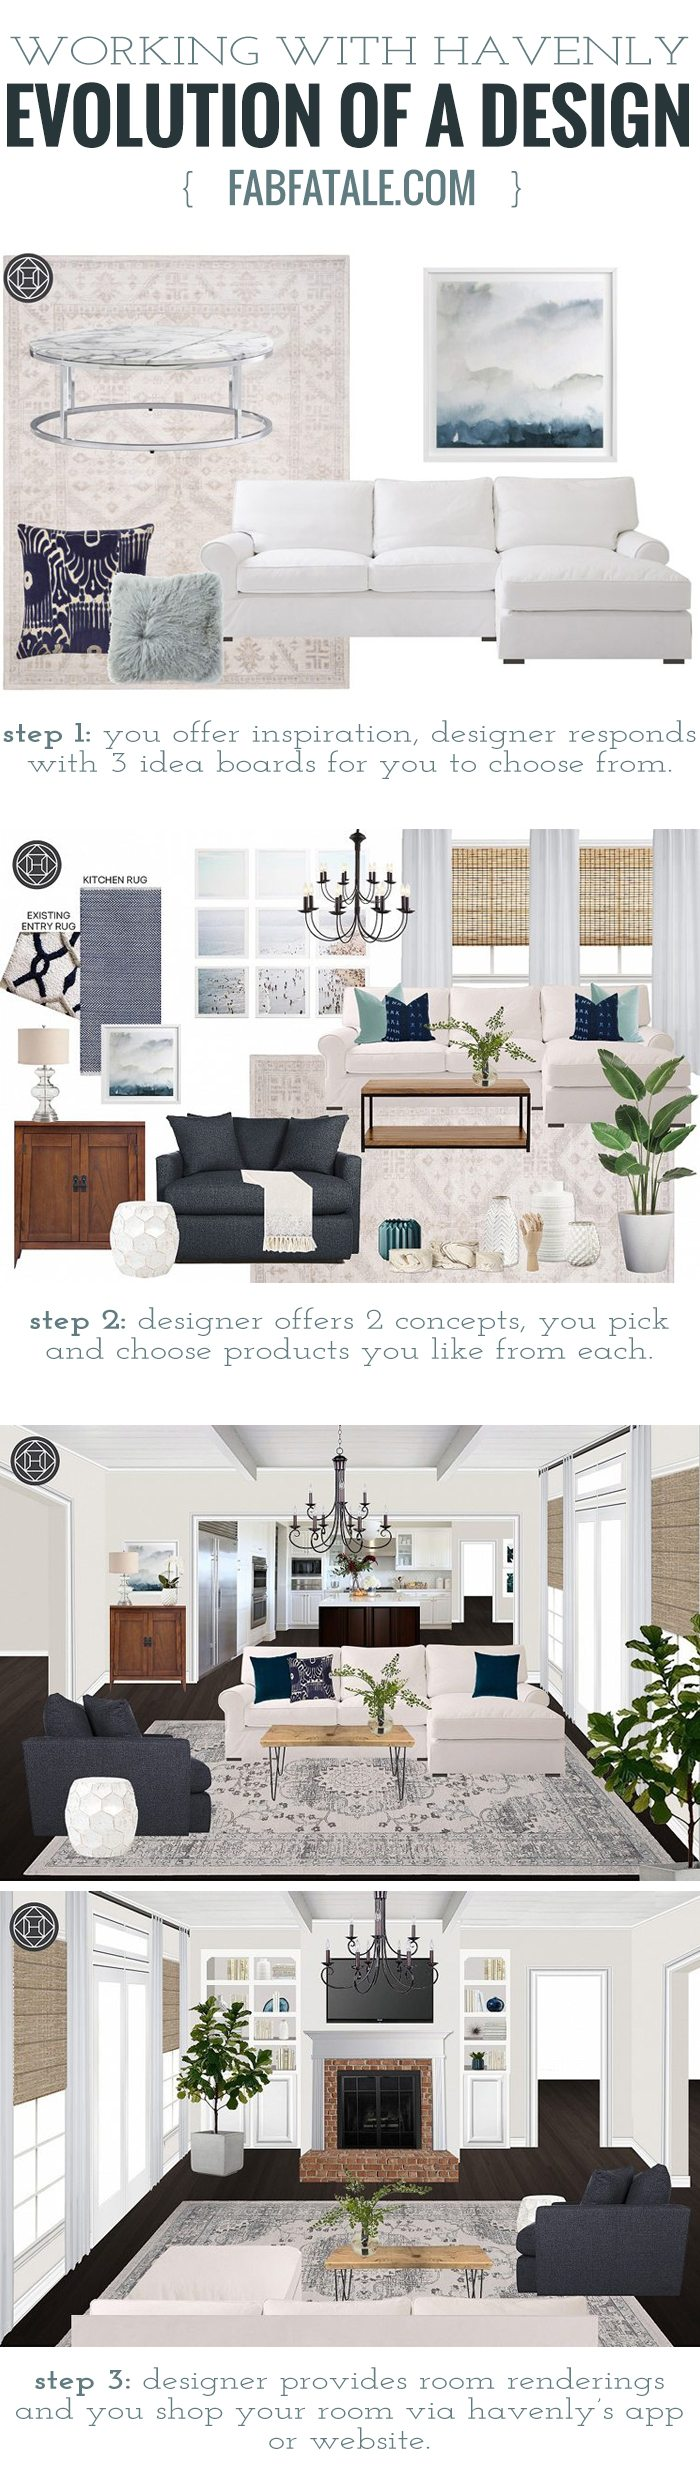 if you've ever wondered what it's like to work with @thehavenly, the amazingly talented interior decorators that offer full room designs in an online service via their app, i've outlined the step-by-step service, including my rustic boho living room renderings and my comments shared with my designer #homedecor #interiordesign